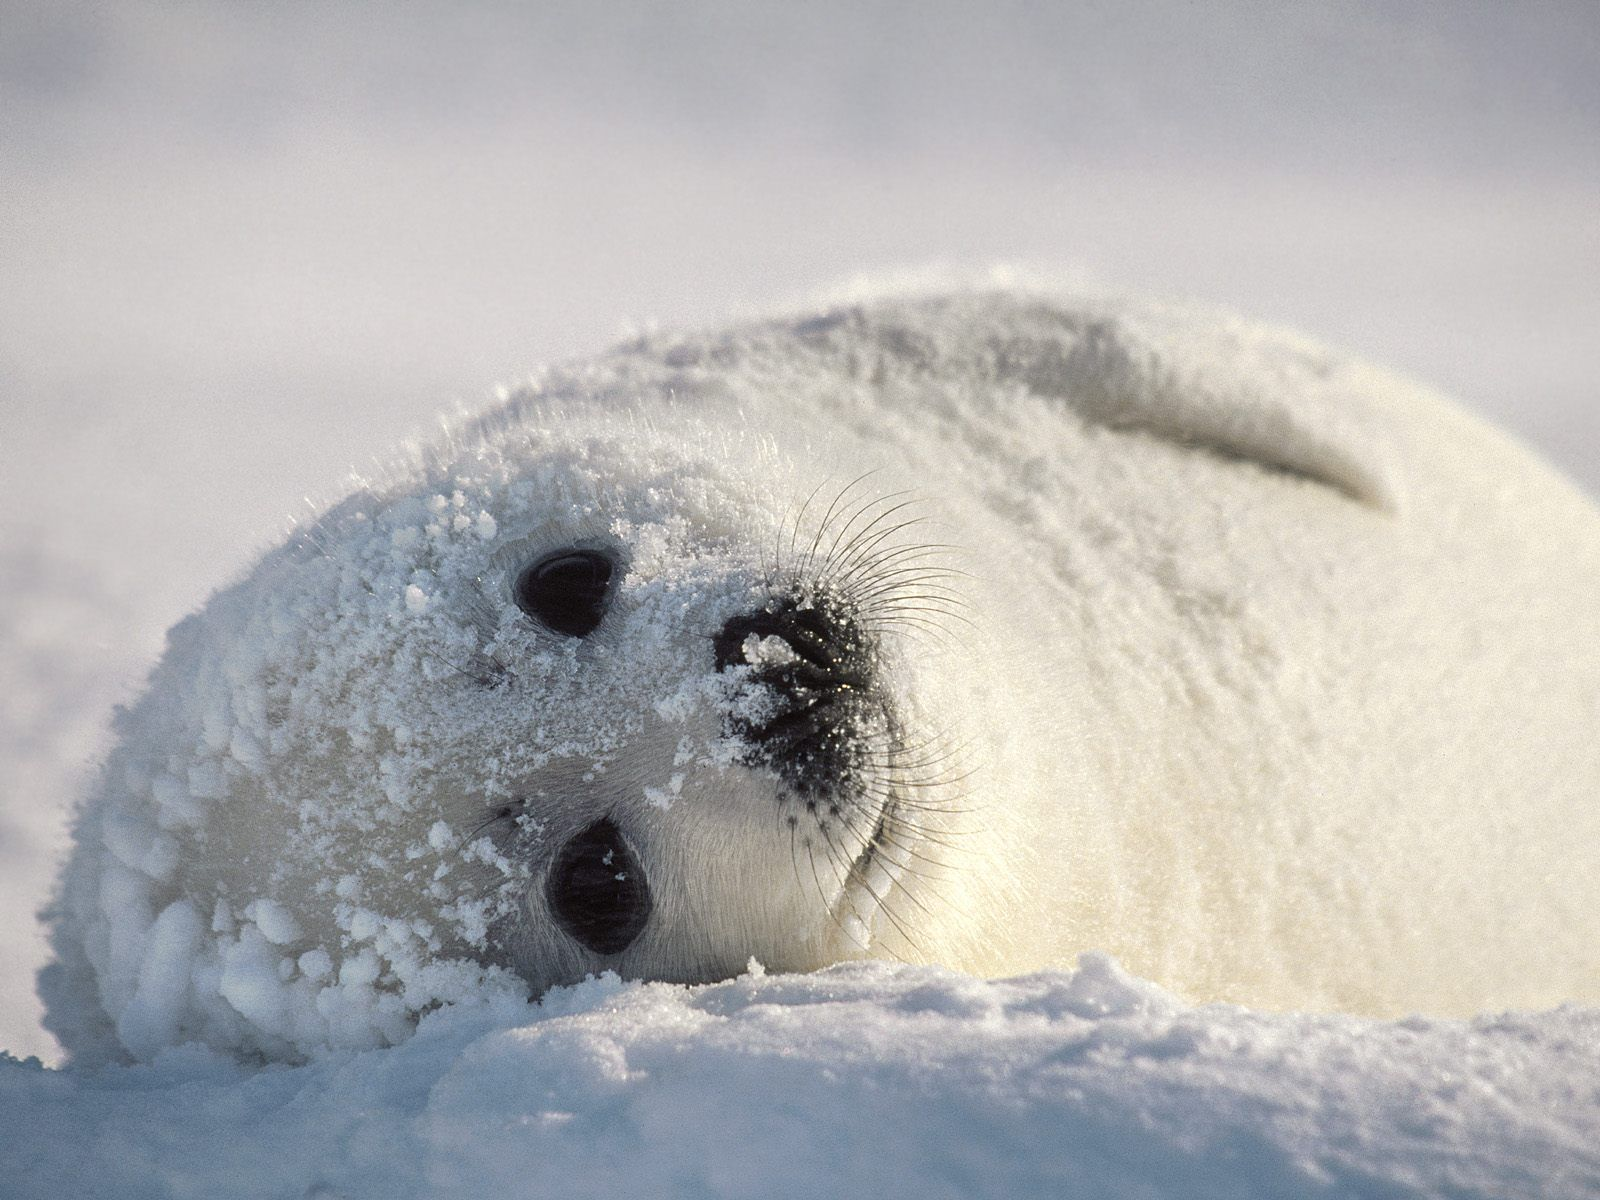 Harp Seal Cute Animal Interesting Facts Images The Wildlife Percy Jackson Percy Percy Jackson Funny